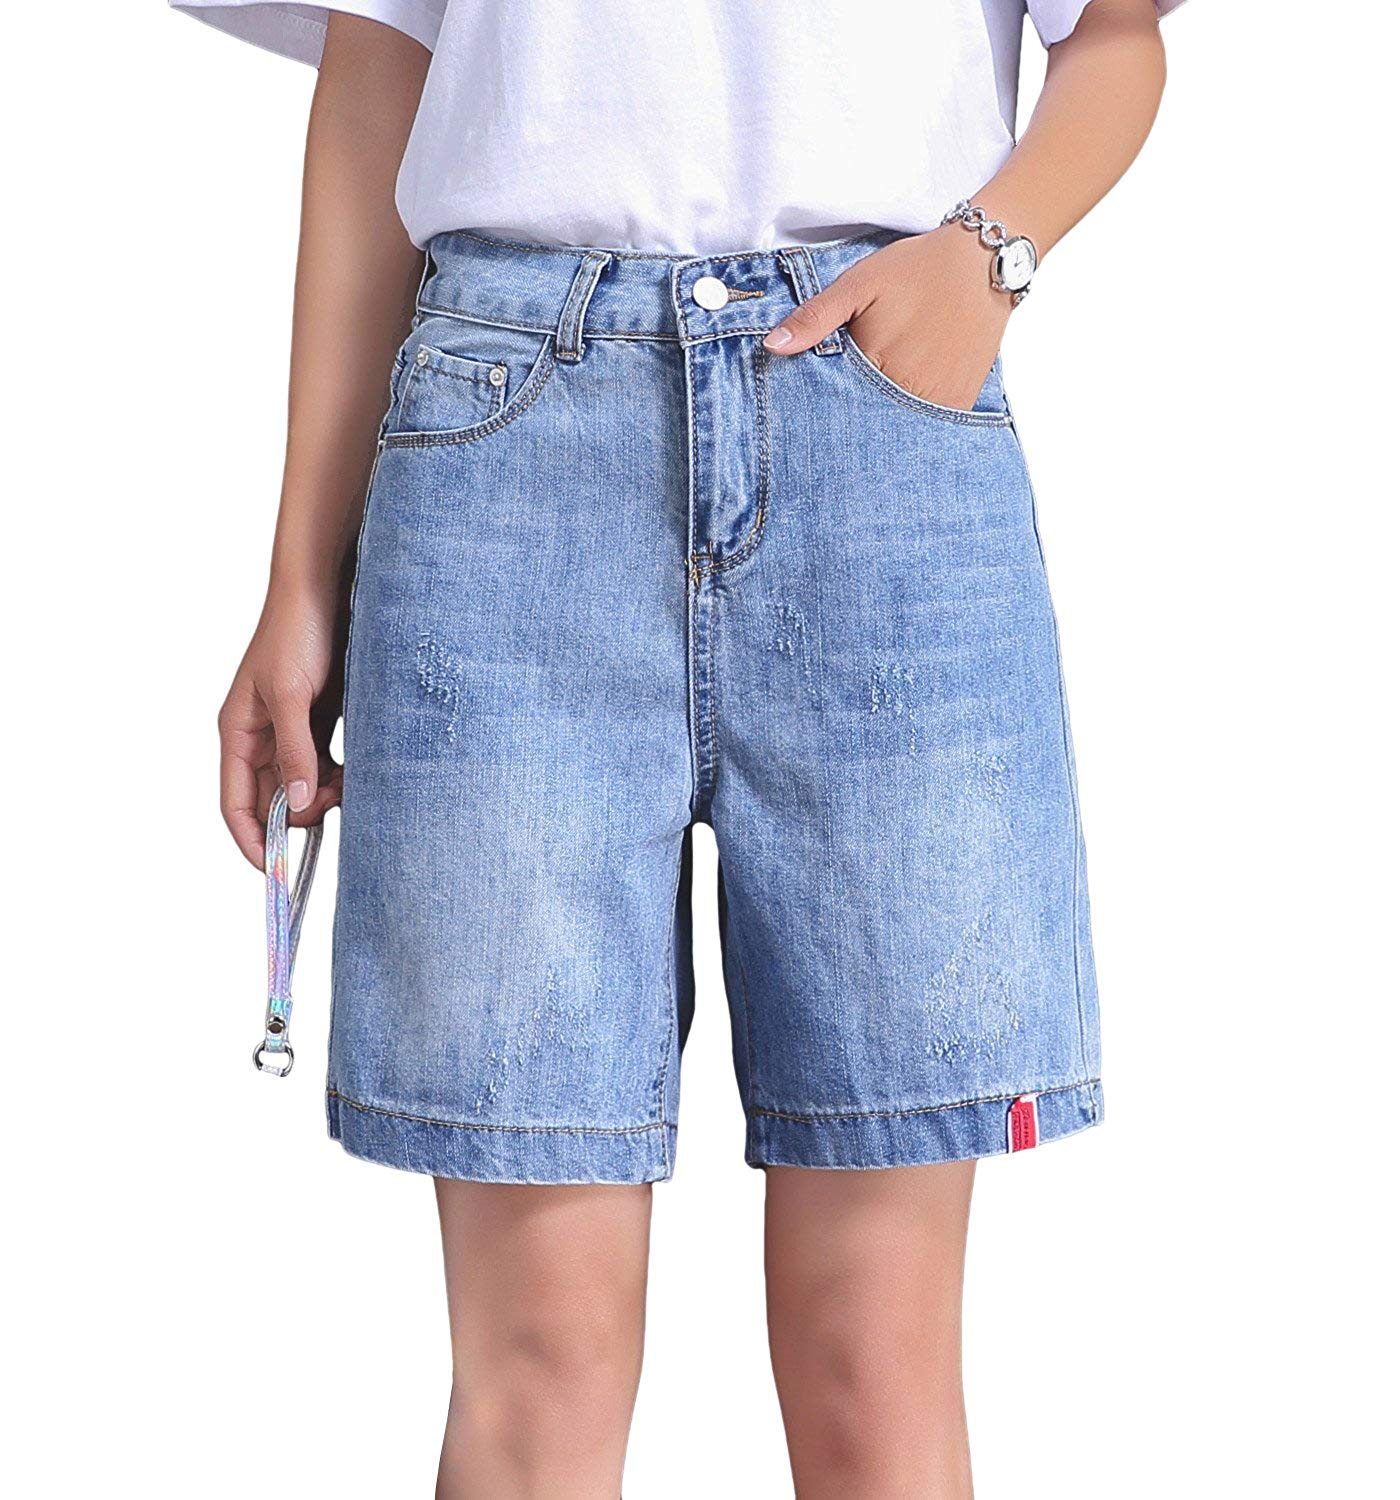 ed0c7a9731 Get Quotations · Oriarm Women Denim Bermuda Shorts High Waist Slim  Distressed Shorts Jeans Summer Casual Wide Leg Shorts